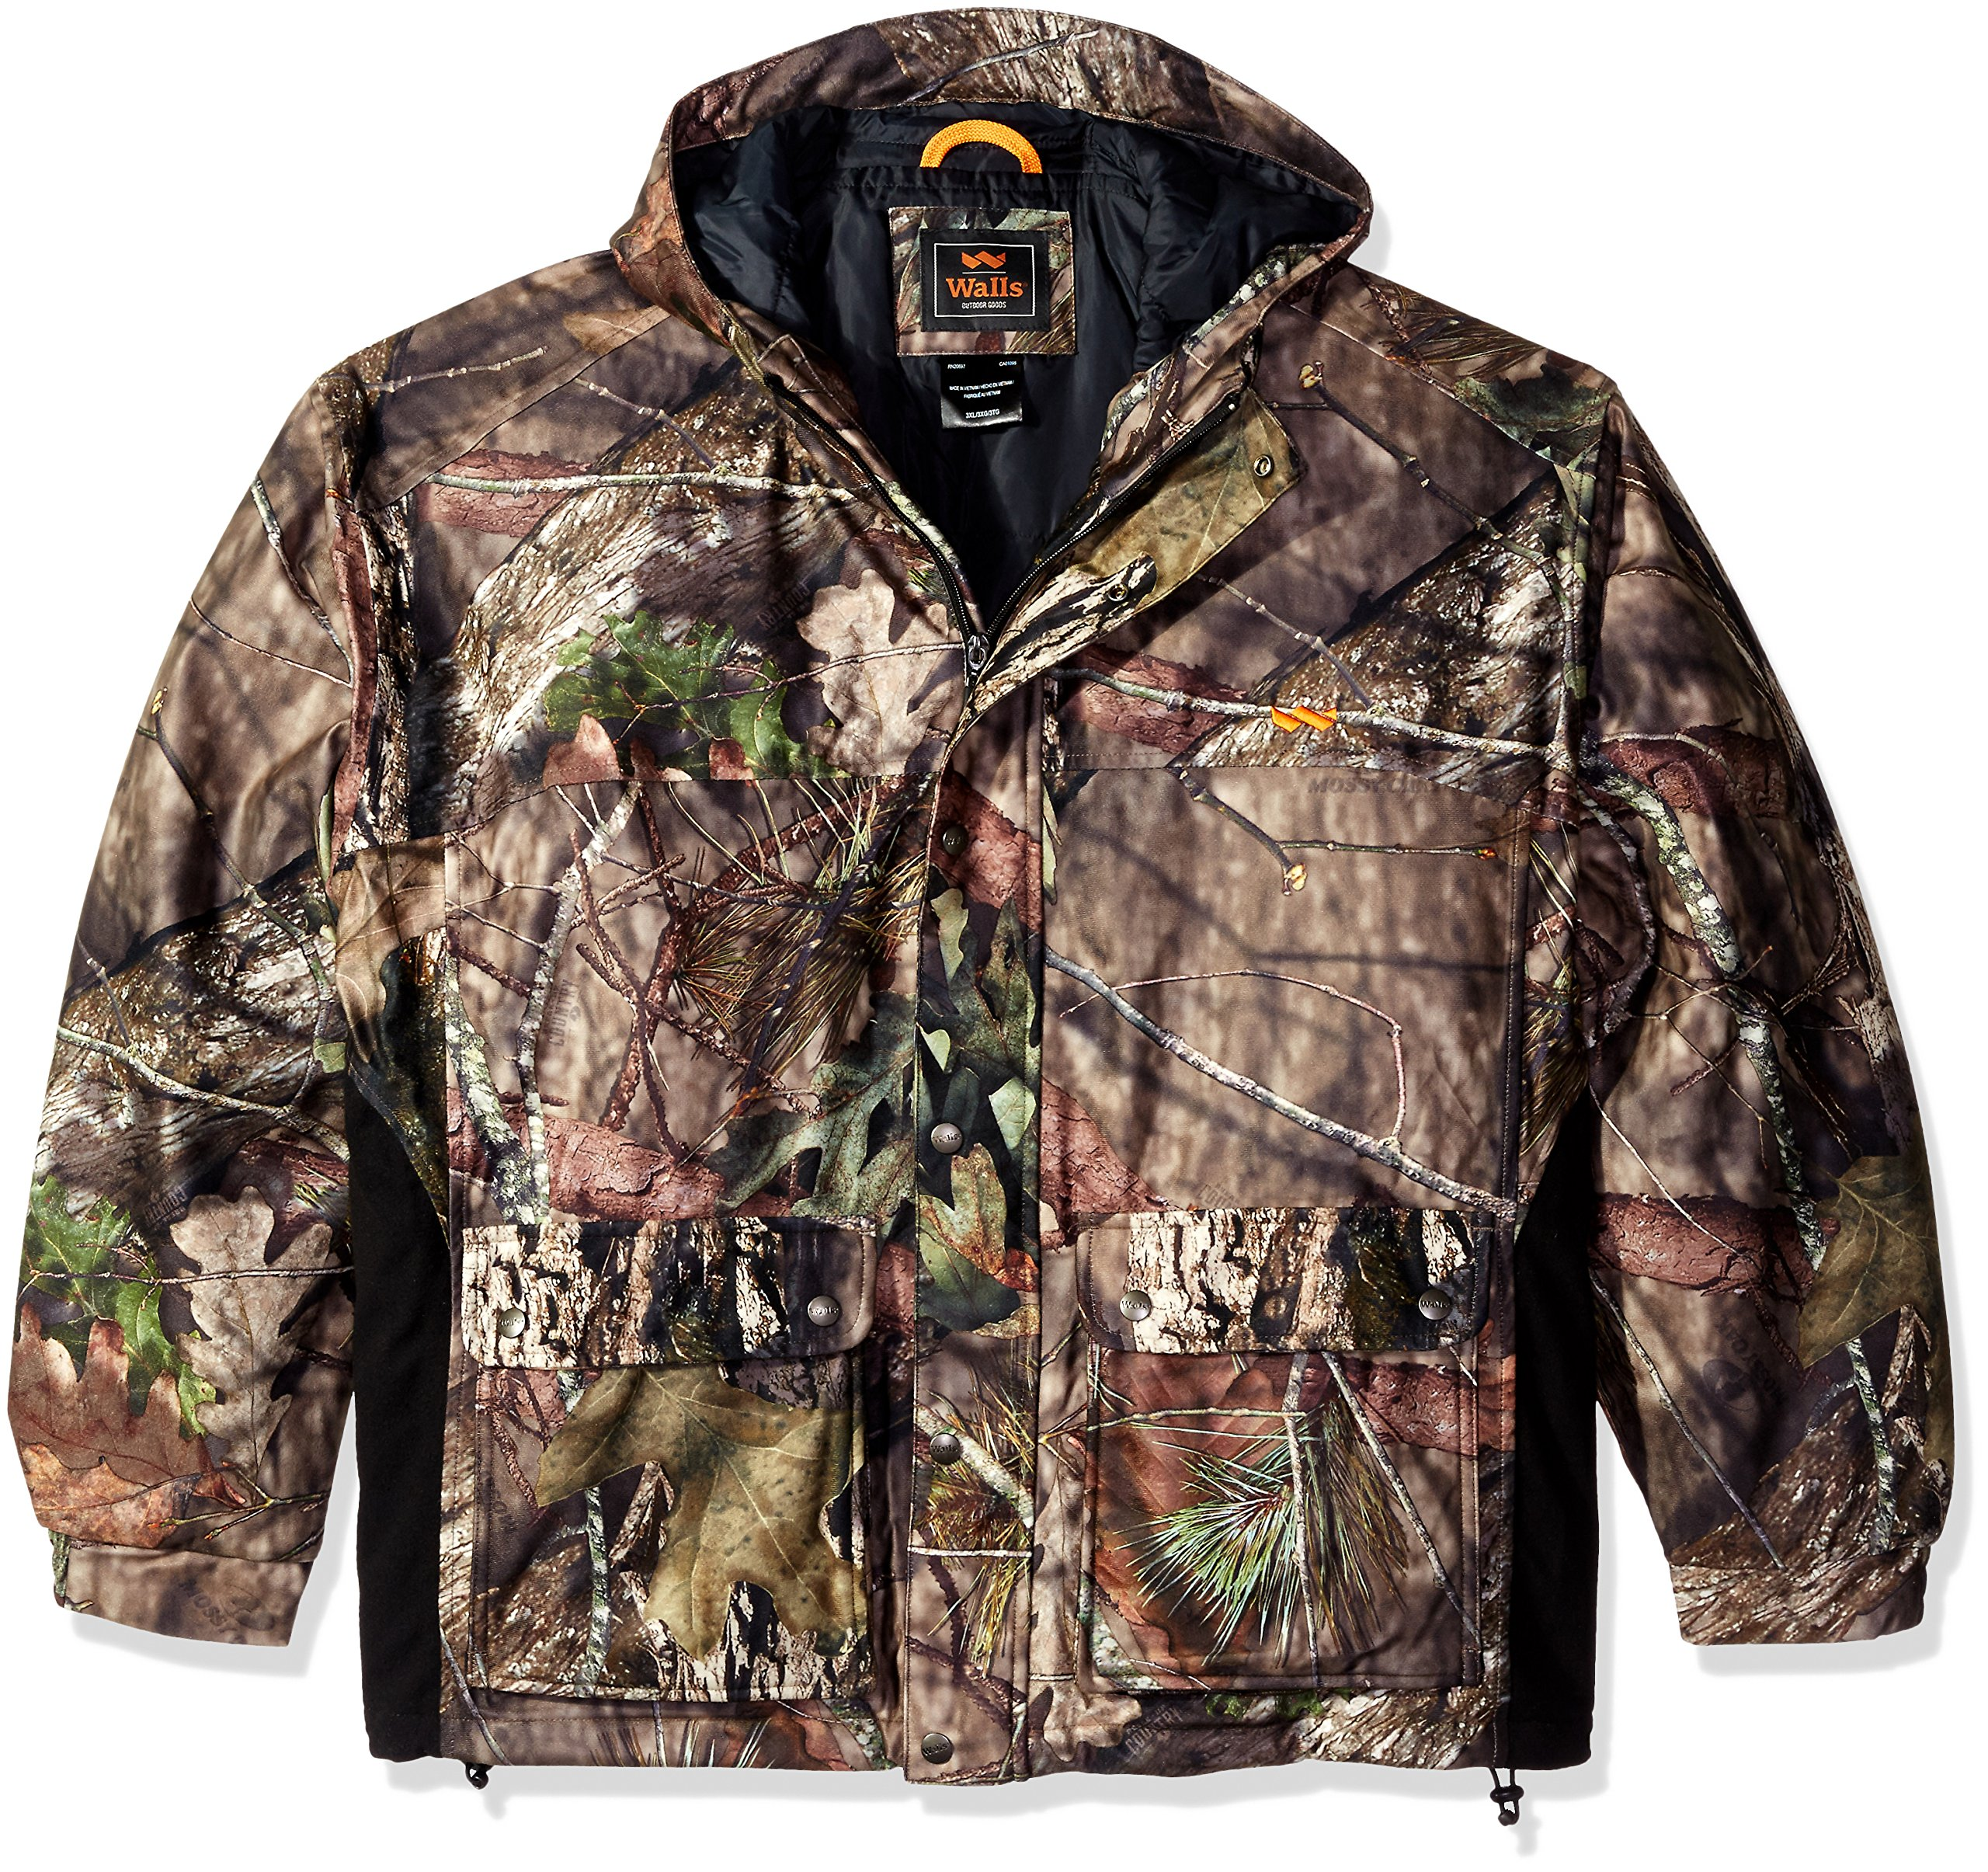 Walls Men's Hunting Power Buy Insulated Jacket Big, Mossy Oak Break up Country, 3X